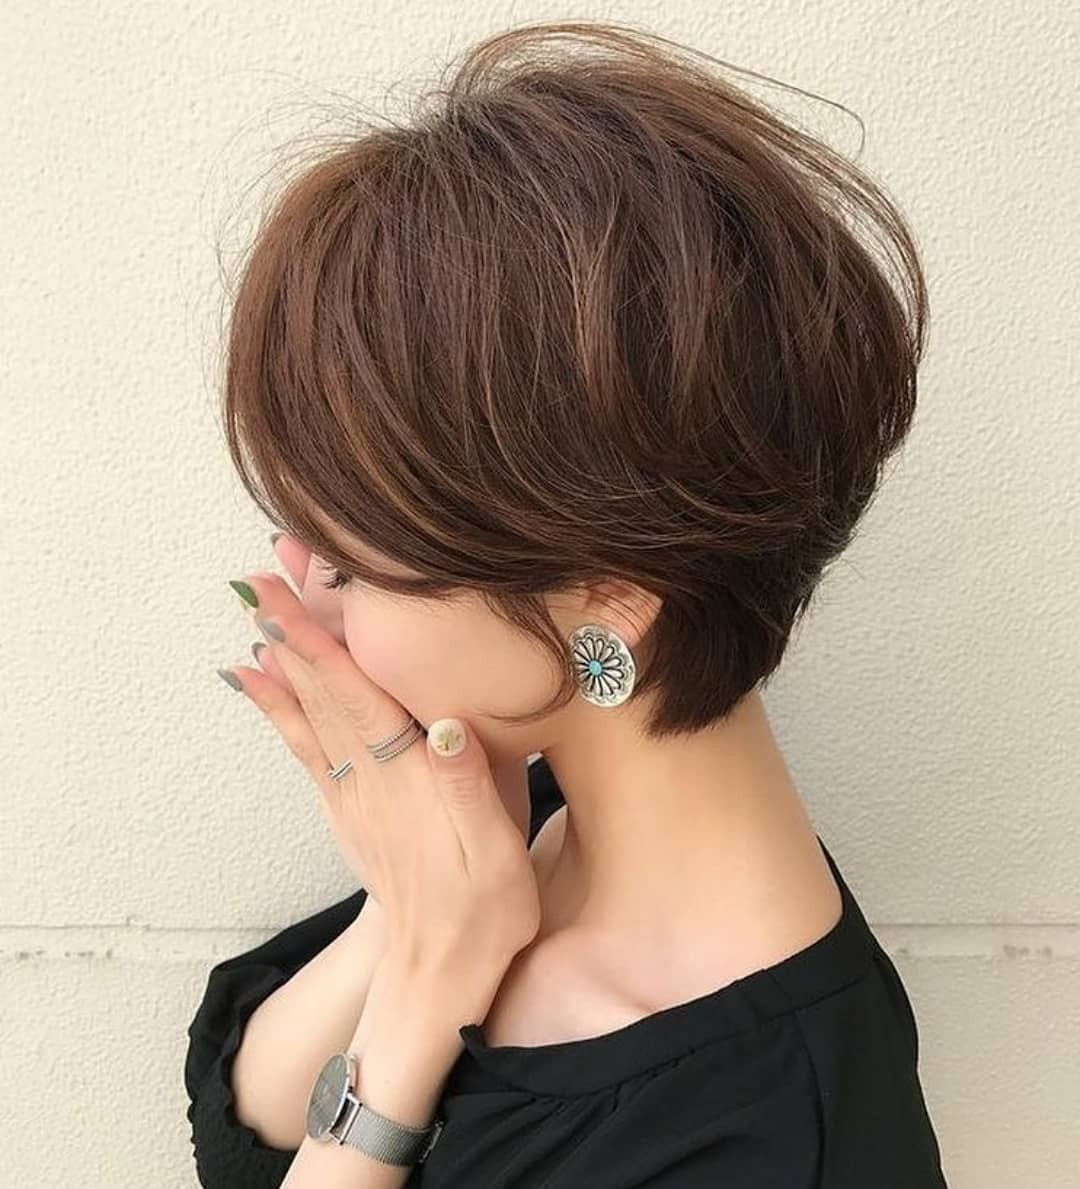 Best ideas about Cute Bob Hairstyles 2019 . Save or Pin 10 Cute Short Hairstyles and Haircuts for Young Girls Now.